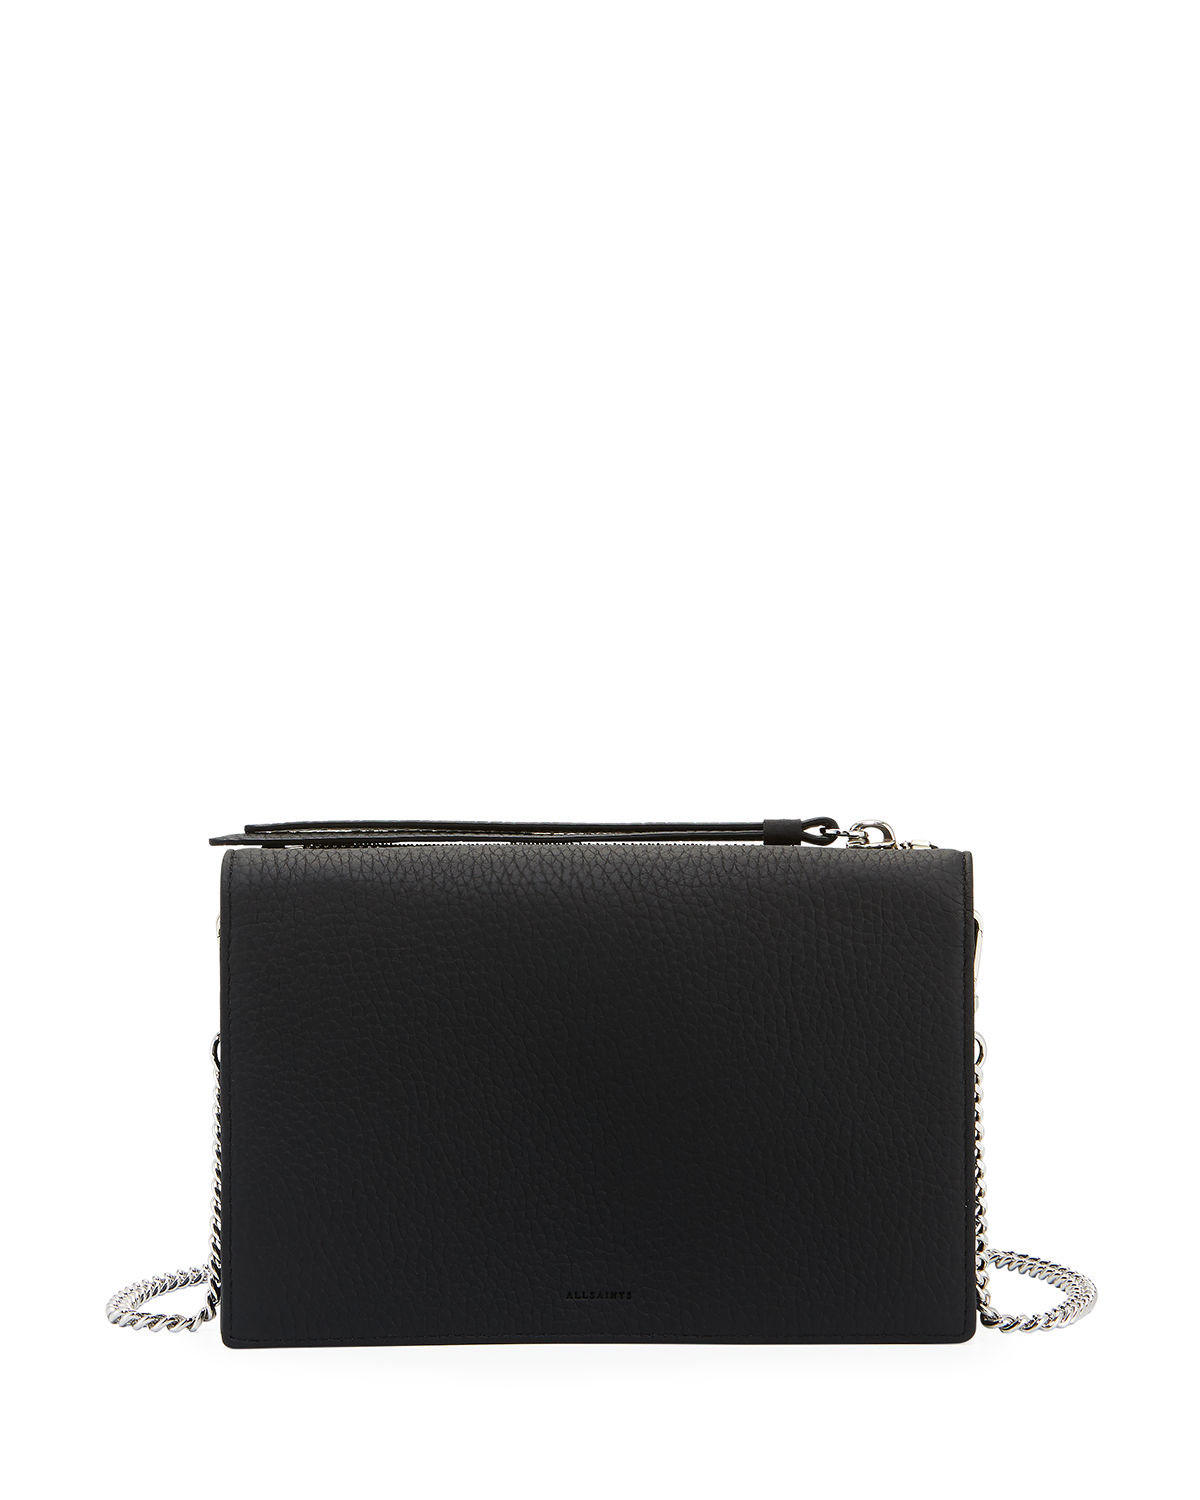 882d419f7c78d4 AllSaints Fetch Chain Wallet Crossbody Bag | Neiman Marcus